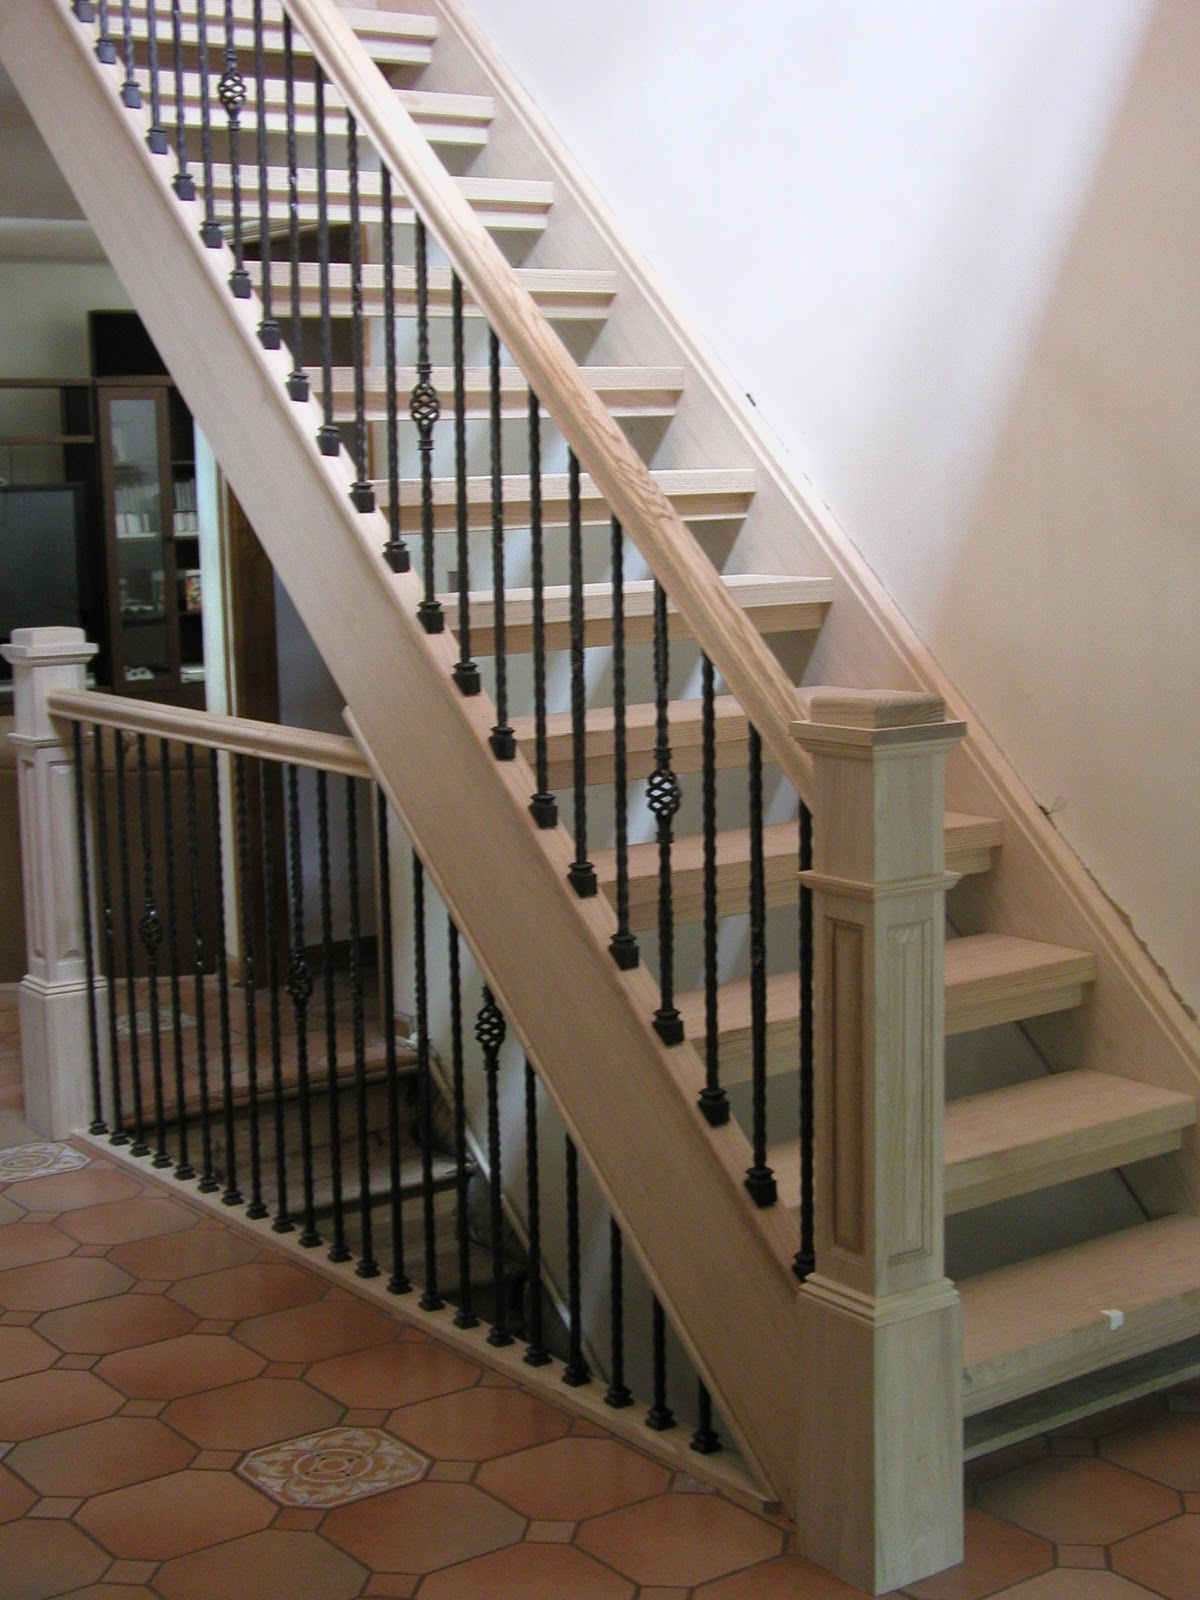 Lomonaco 39 S Iron Concepts Home Decor New Powder Coated Baluster Finishes Now Available